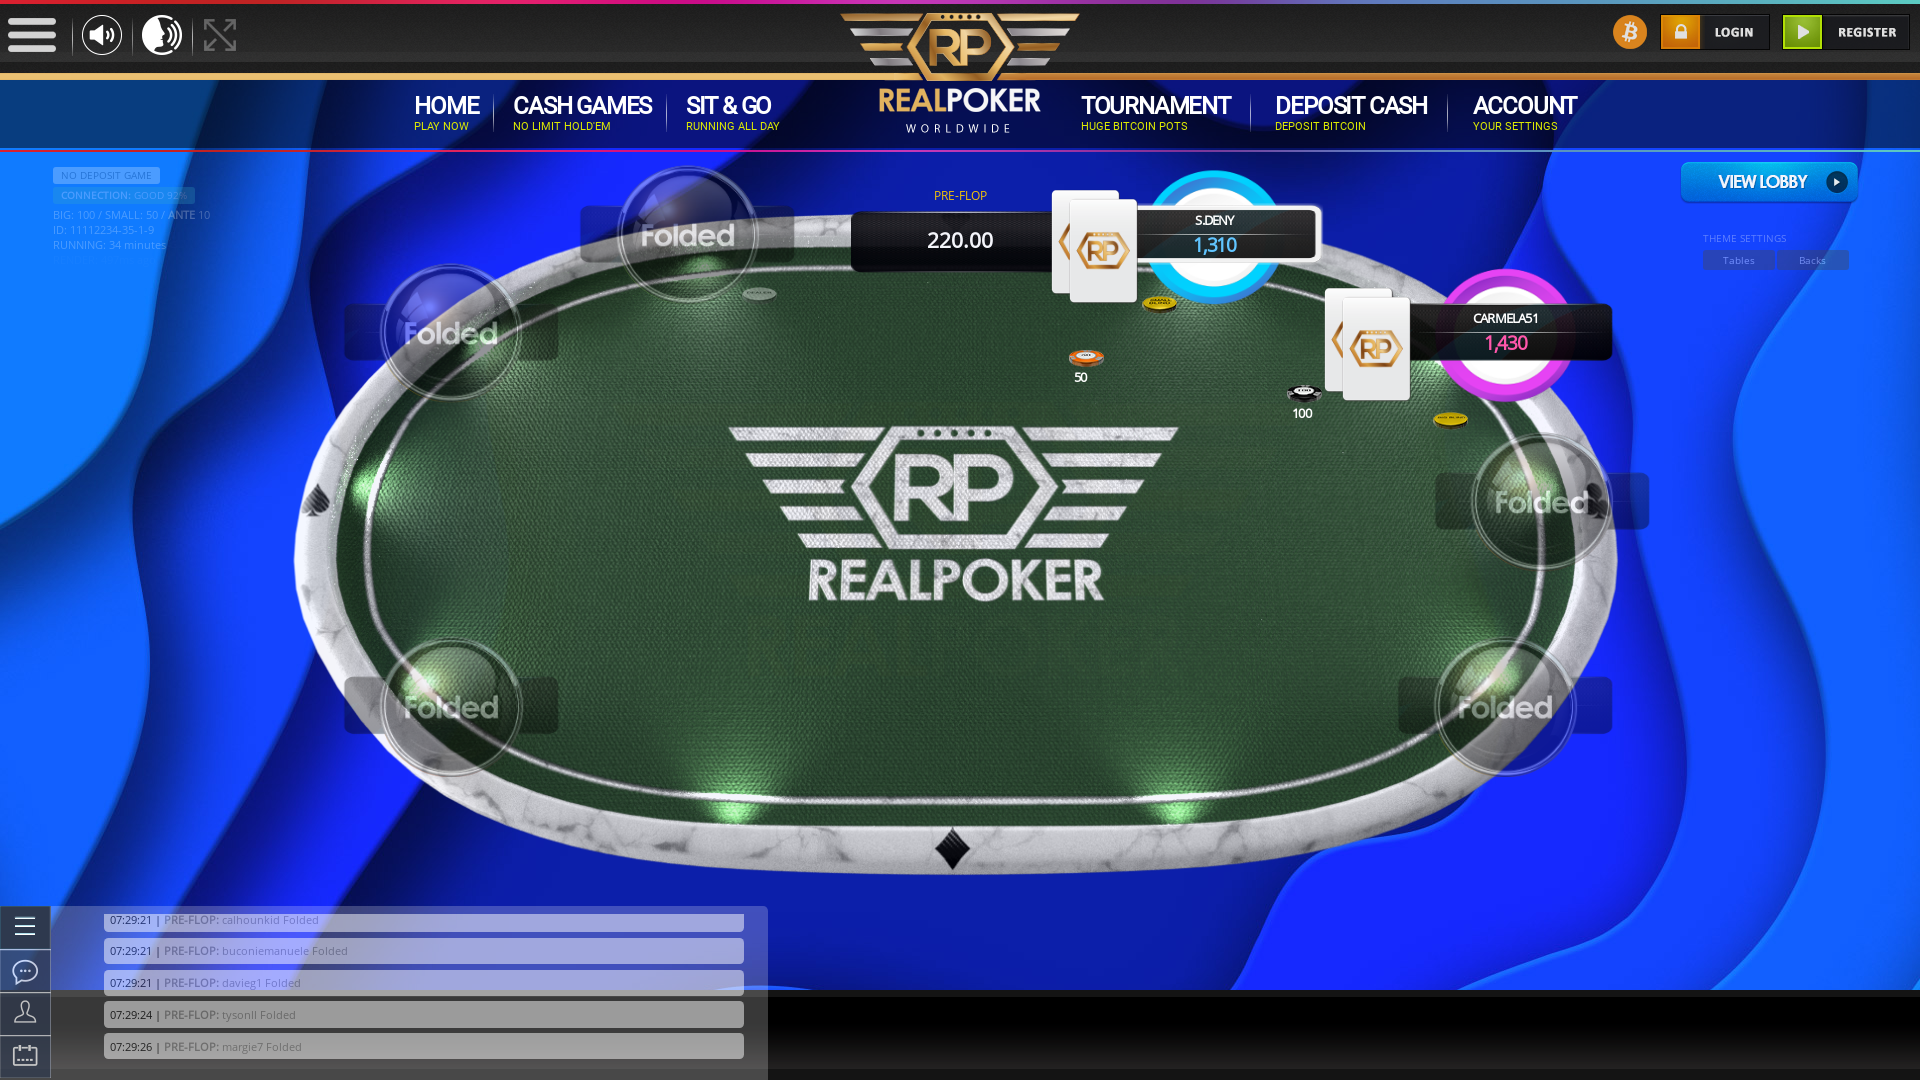 10 player texas holdem table at real poker with the table id 11112234